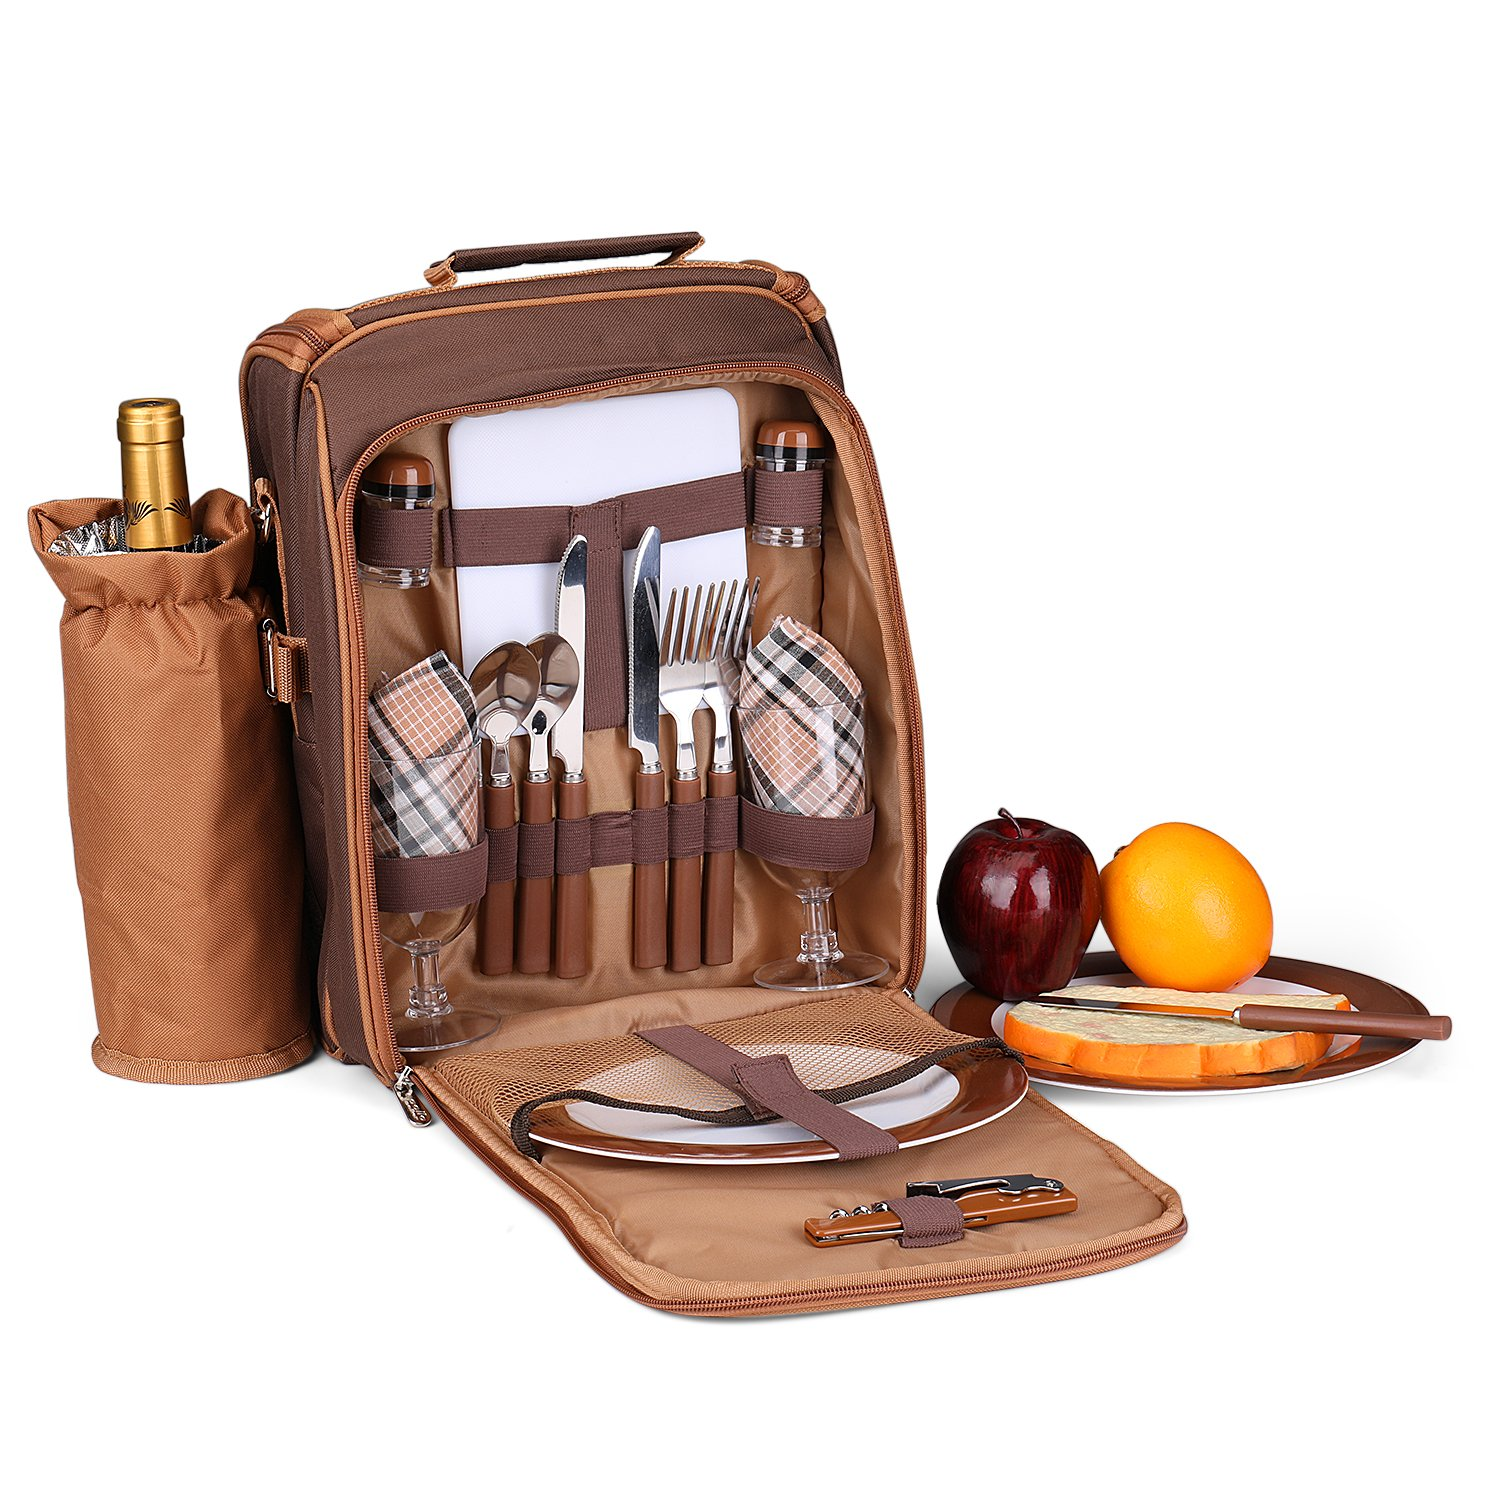 Flexzion Picnic Bag Kit - Set for 2 Person With Cooler Compartment, Detachable Bottle/Wine Holder, Plates and Flatware Cutlery Set Insulated Lunch Bag (Plaid Tartan - Brown) by Flexzion